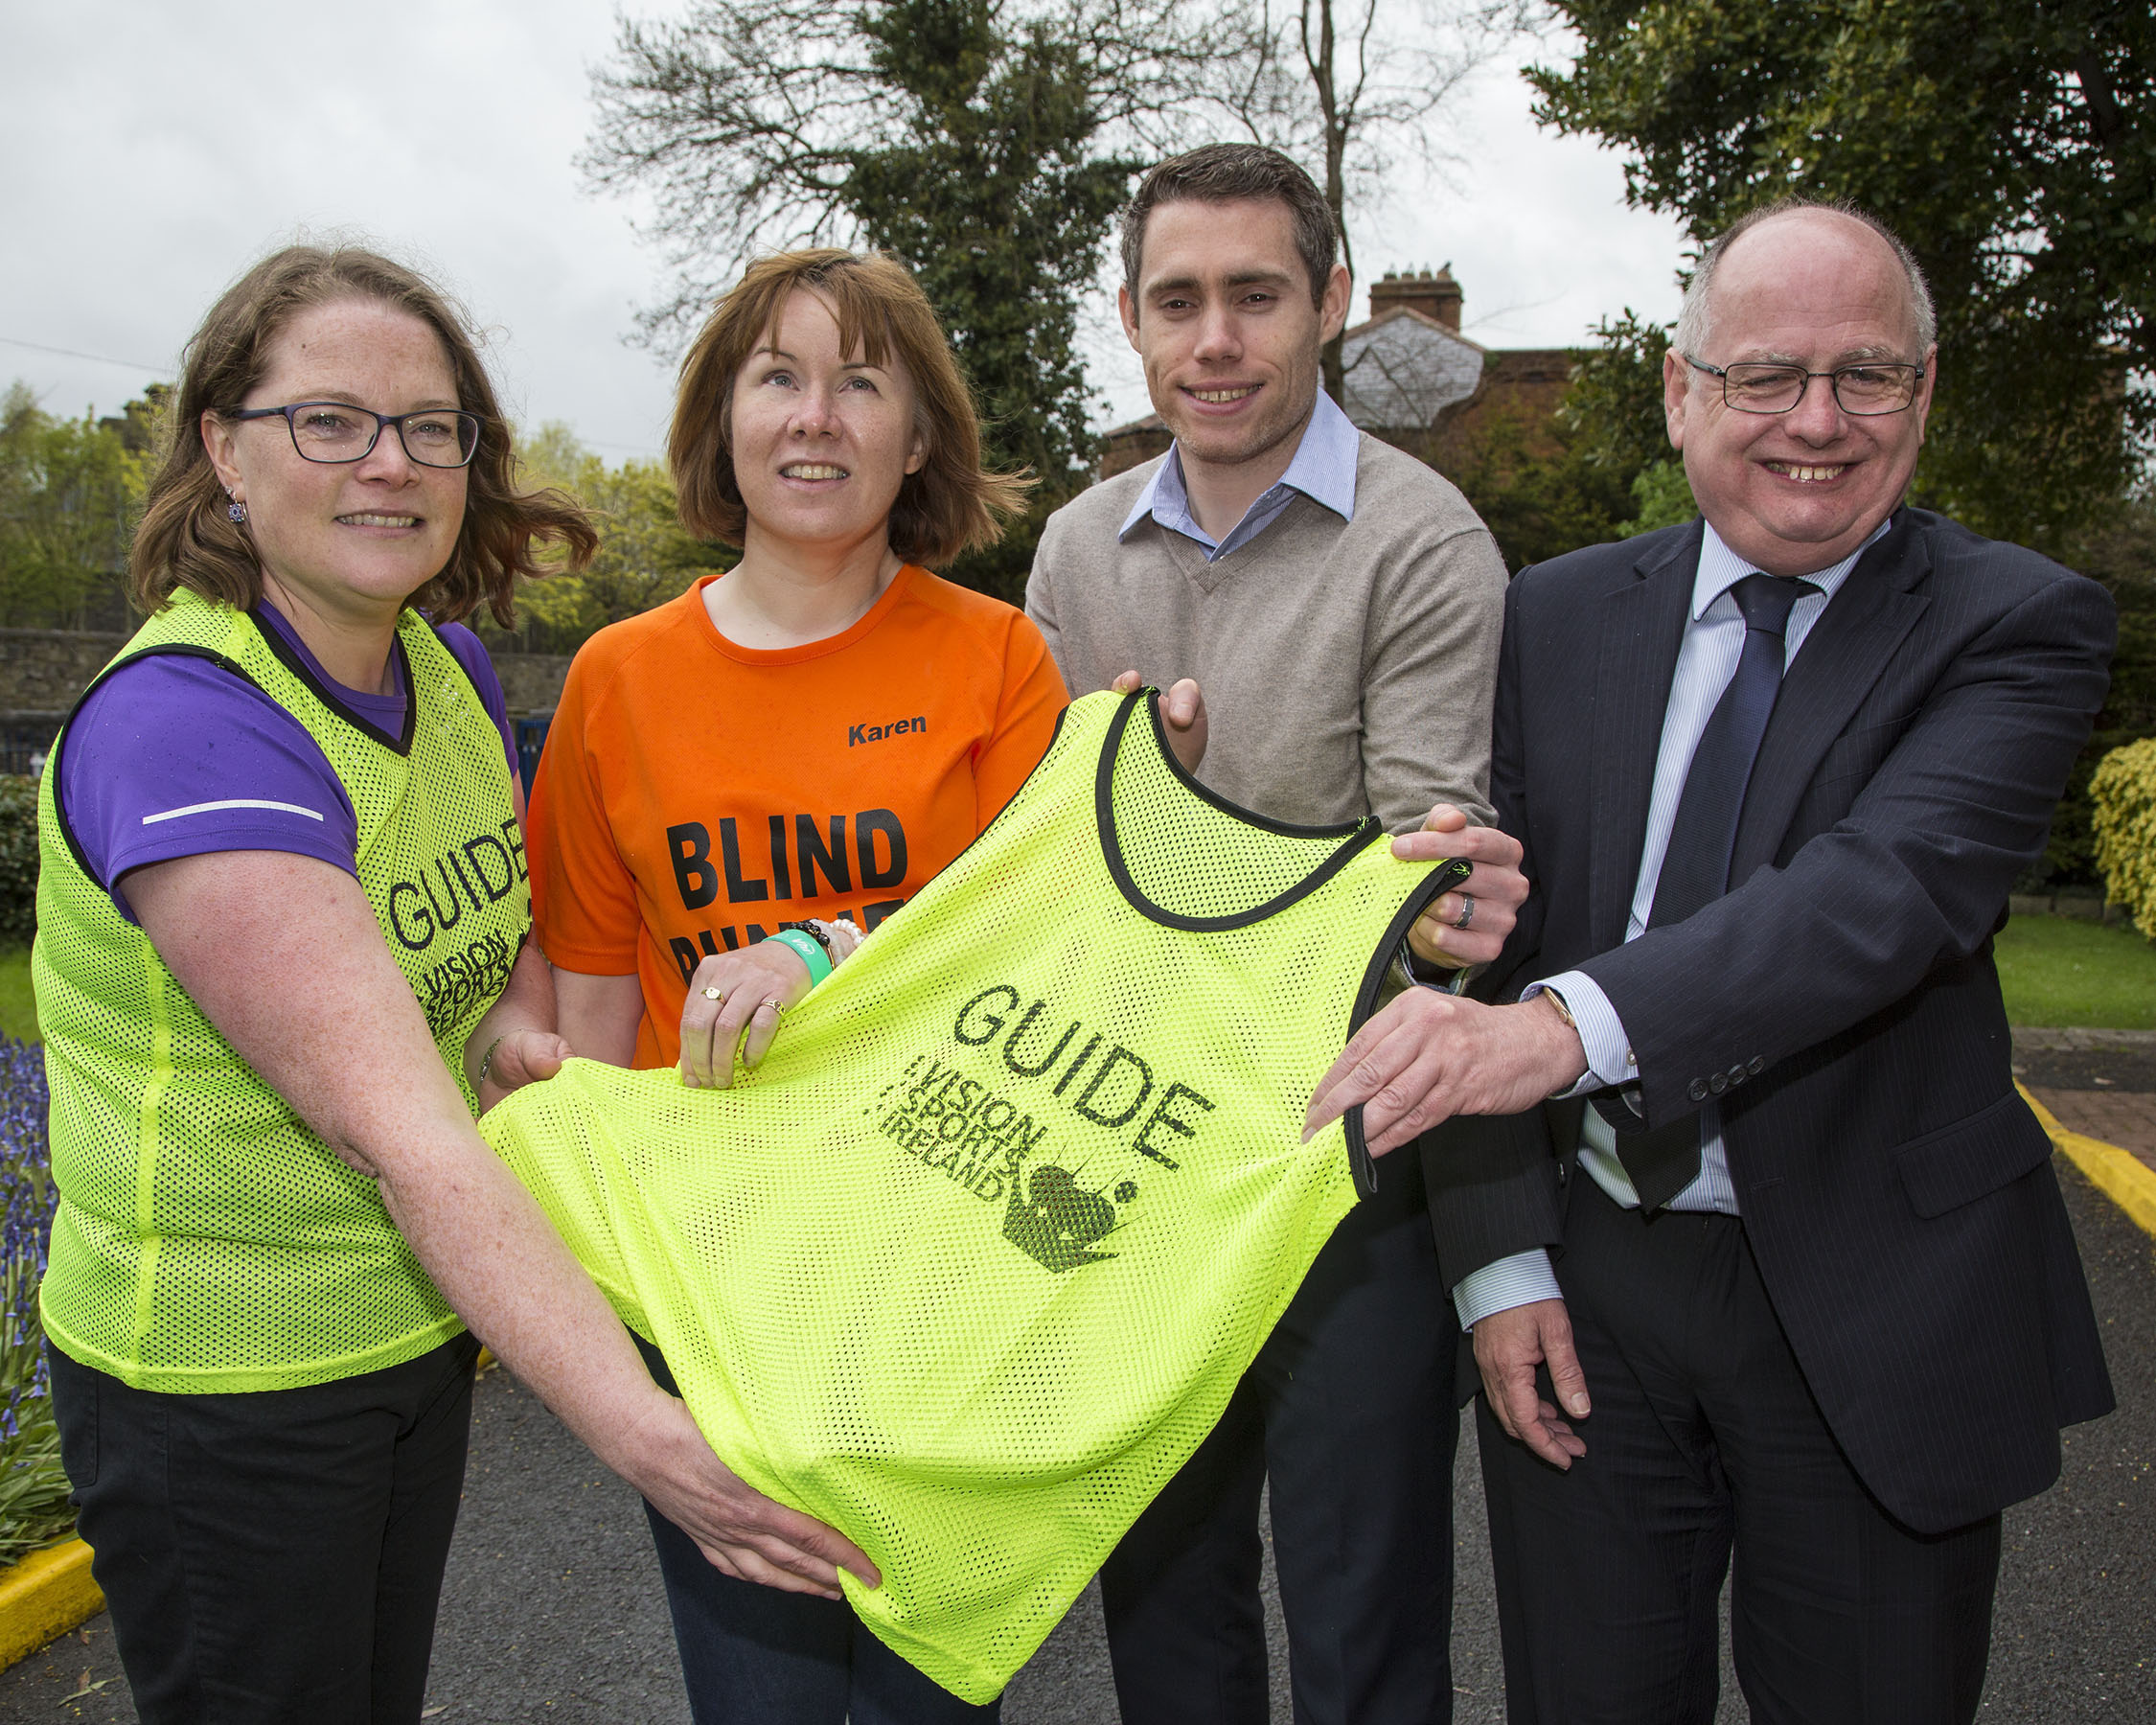 Pictured is Joan Ryan , Karen Kealy, Jason Smyth and Joe Geraghty holding the sighted guide bib